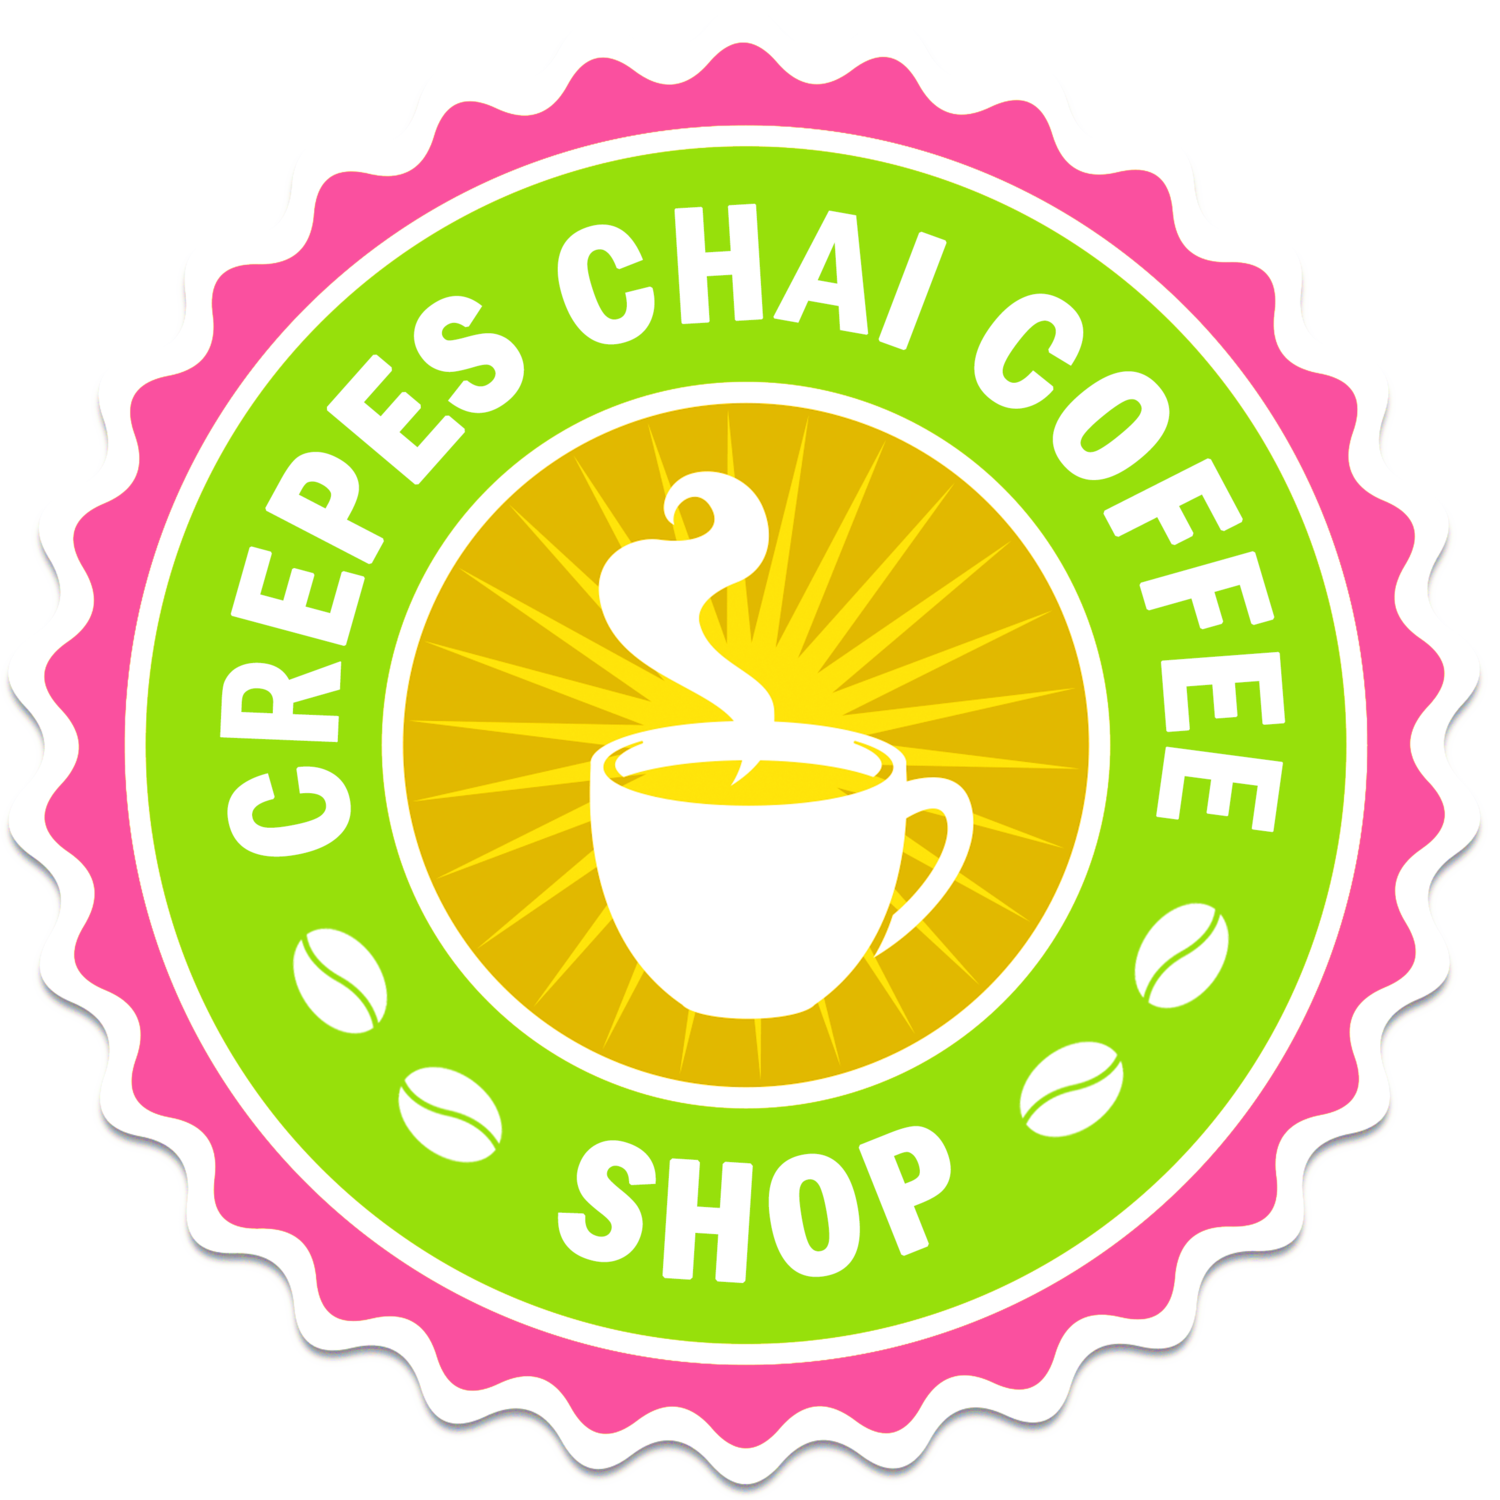 Crepes Chai Coffee shop | Top Coffee Shops in Vienna, VA | Tysons Corner Cafe | Breakfast-Lunch-Brunch |